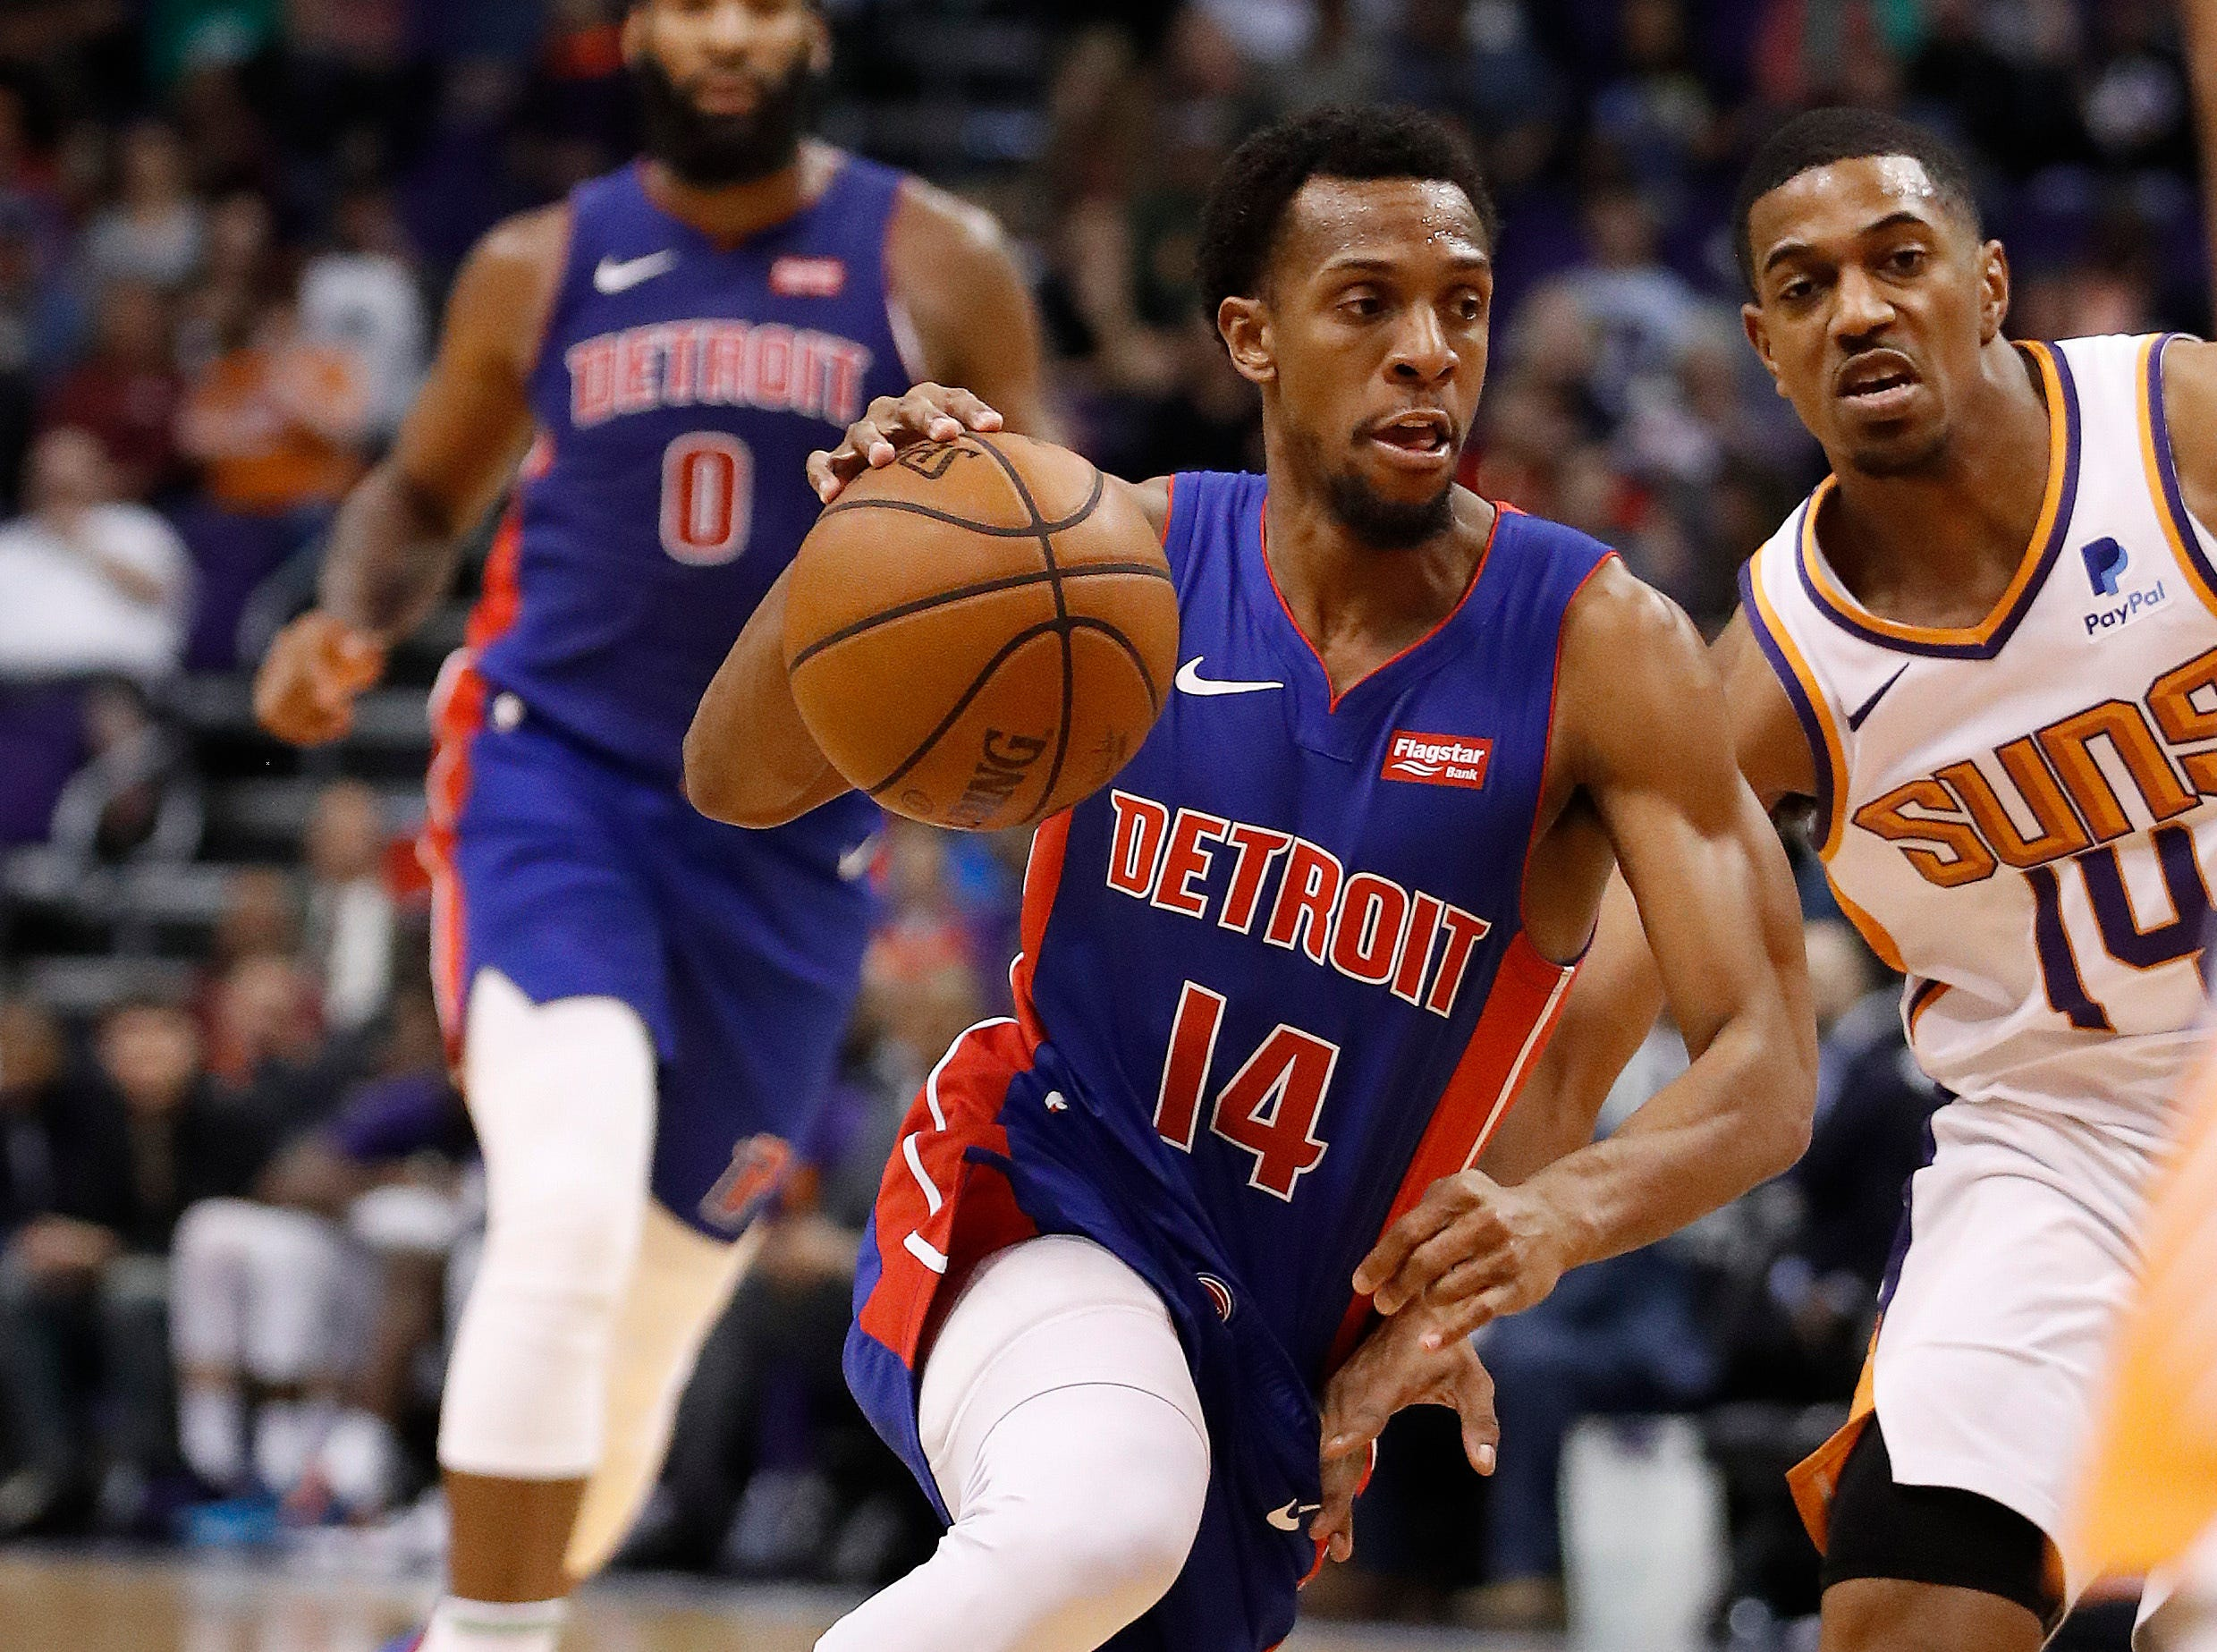 Detroit Pistons guard Ish Smith (14) drives against Phoenix Suns guard De'Anthony Melton (14) during the first half.